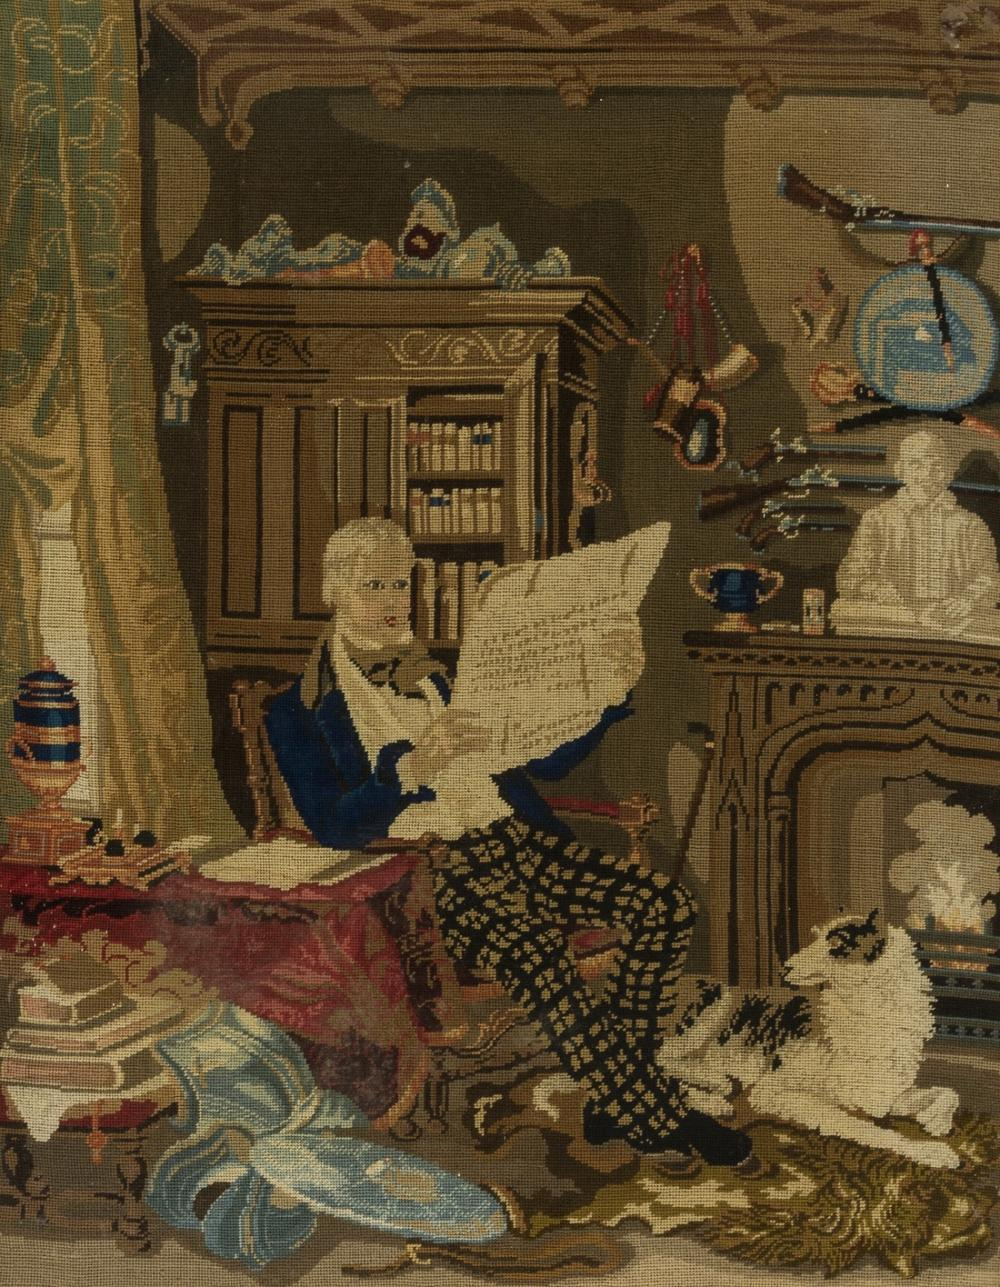 [Scott (Sir Walter)] Portrait, seated in his study at Abbotsford, fine-gauge needlepoint in wool, c. 1840